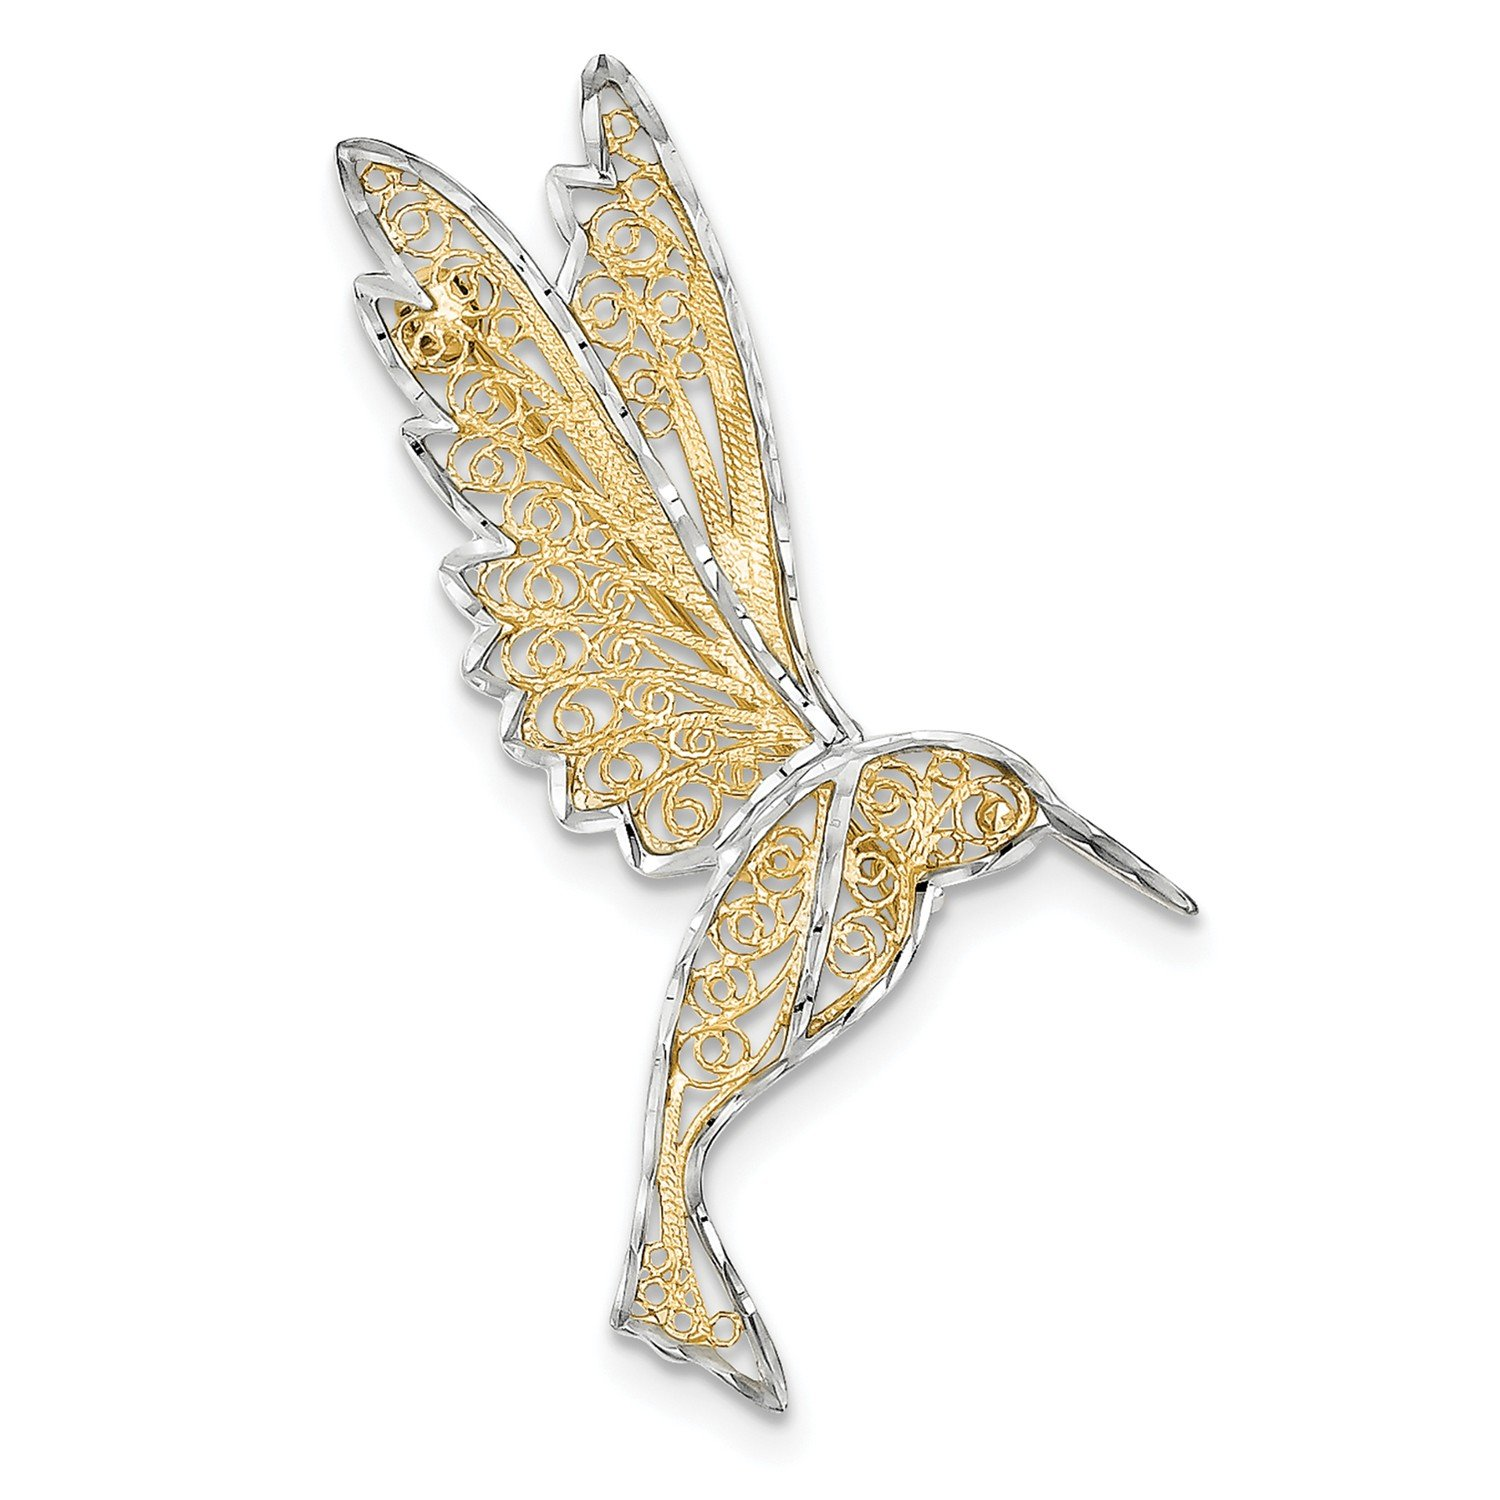 Roy Rose Jewelry 14K Yellow Gold & Rhodium Diamond Cut Filigree Hummingbird Pin